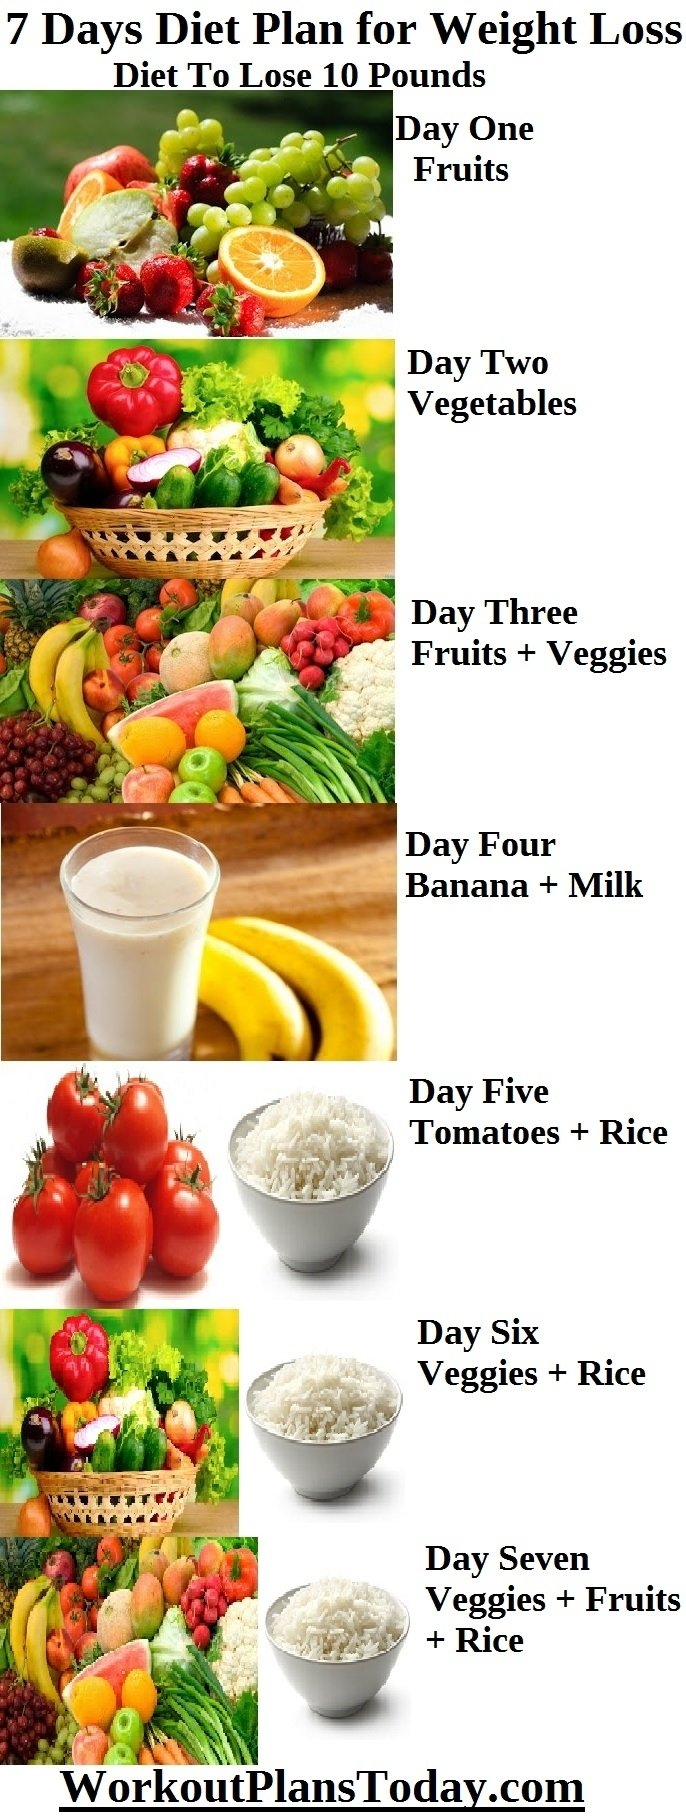 10 Fantastic Diet Ideas For Weight Loss 7 days diet plan for weight loss diet to lose 10 pounds workout 2020